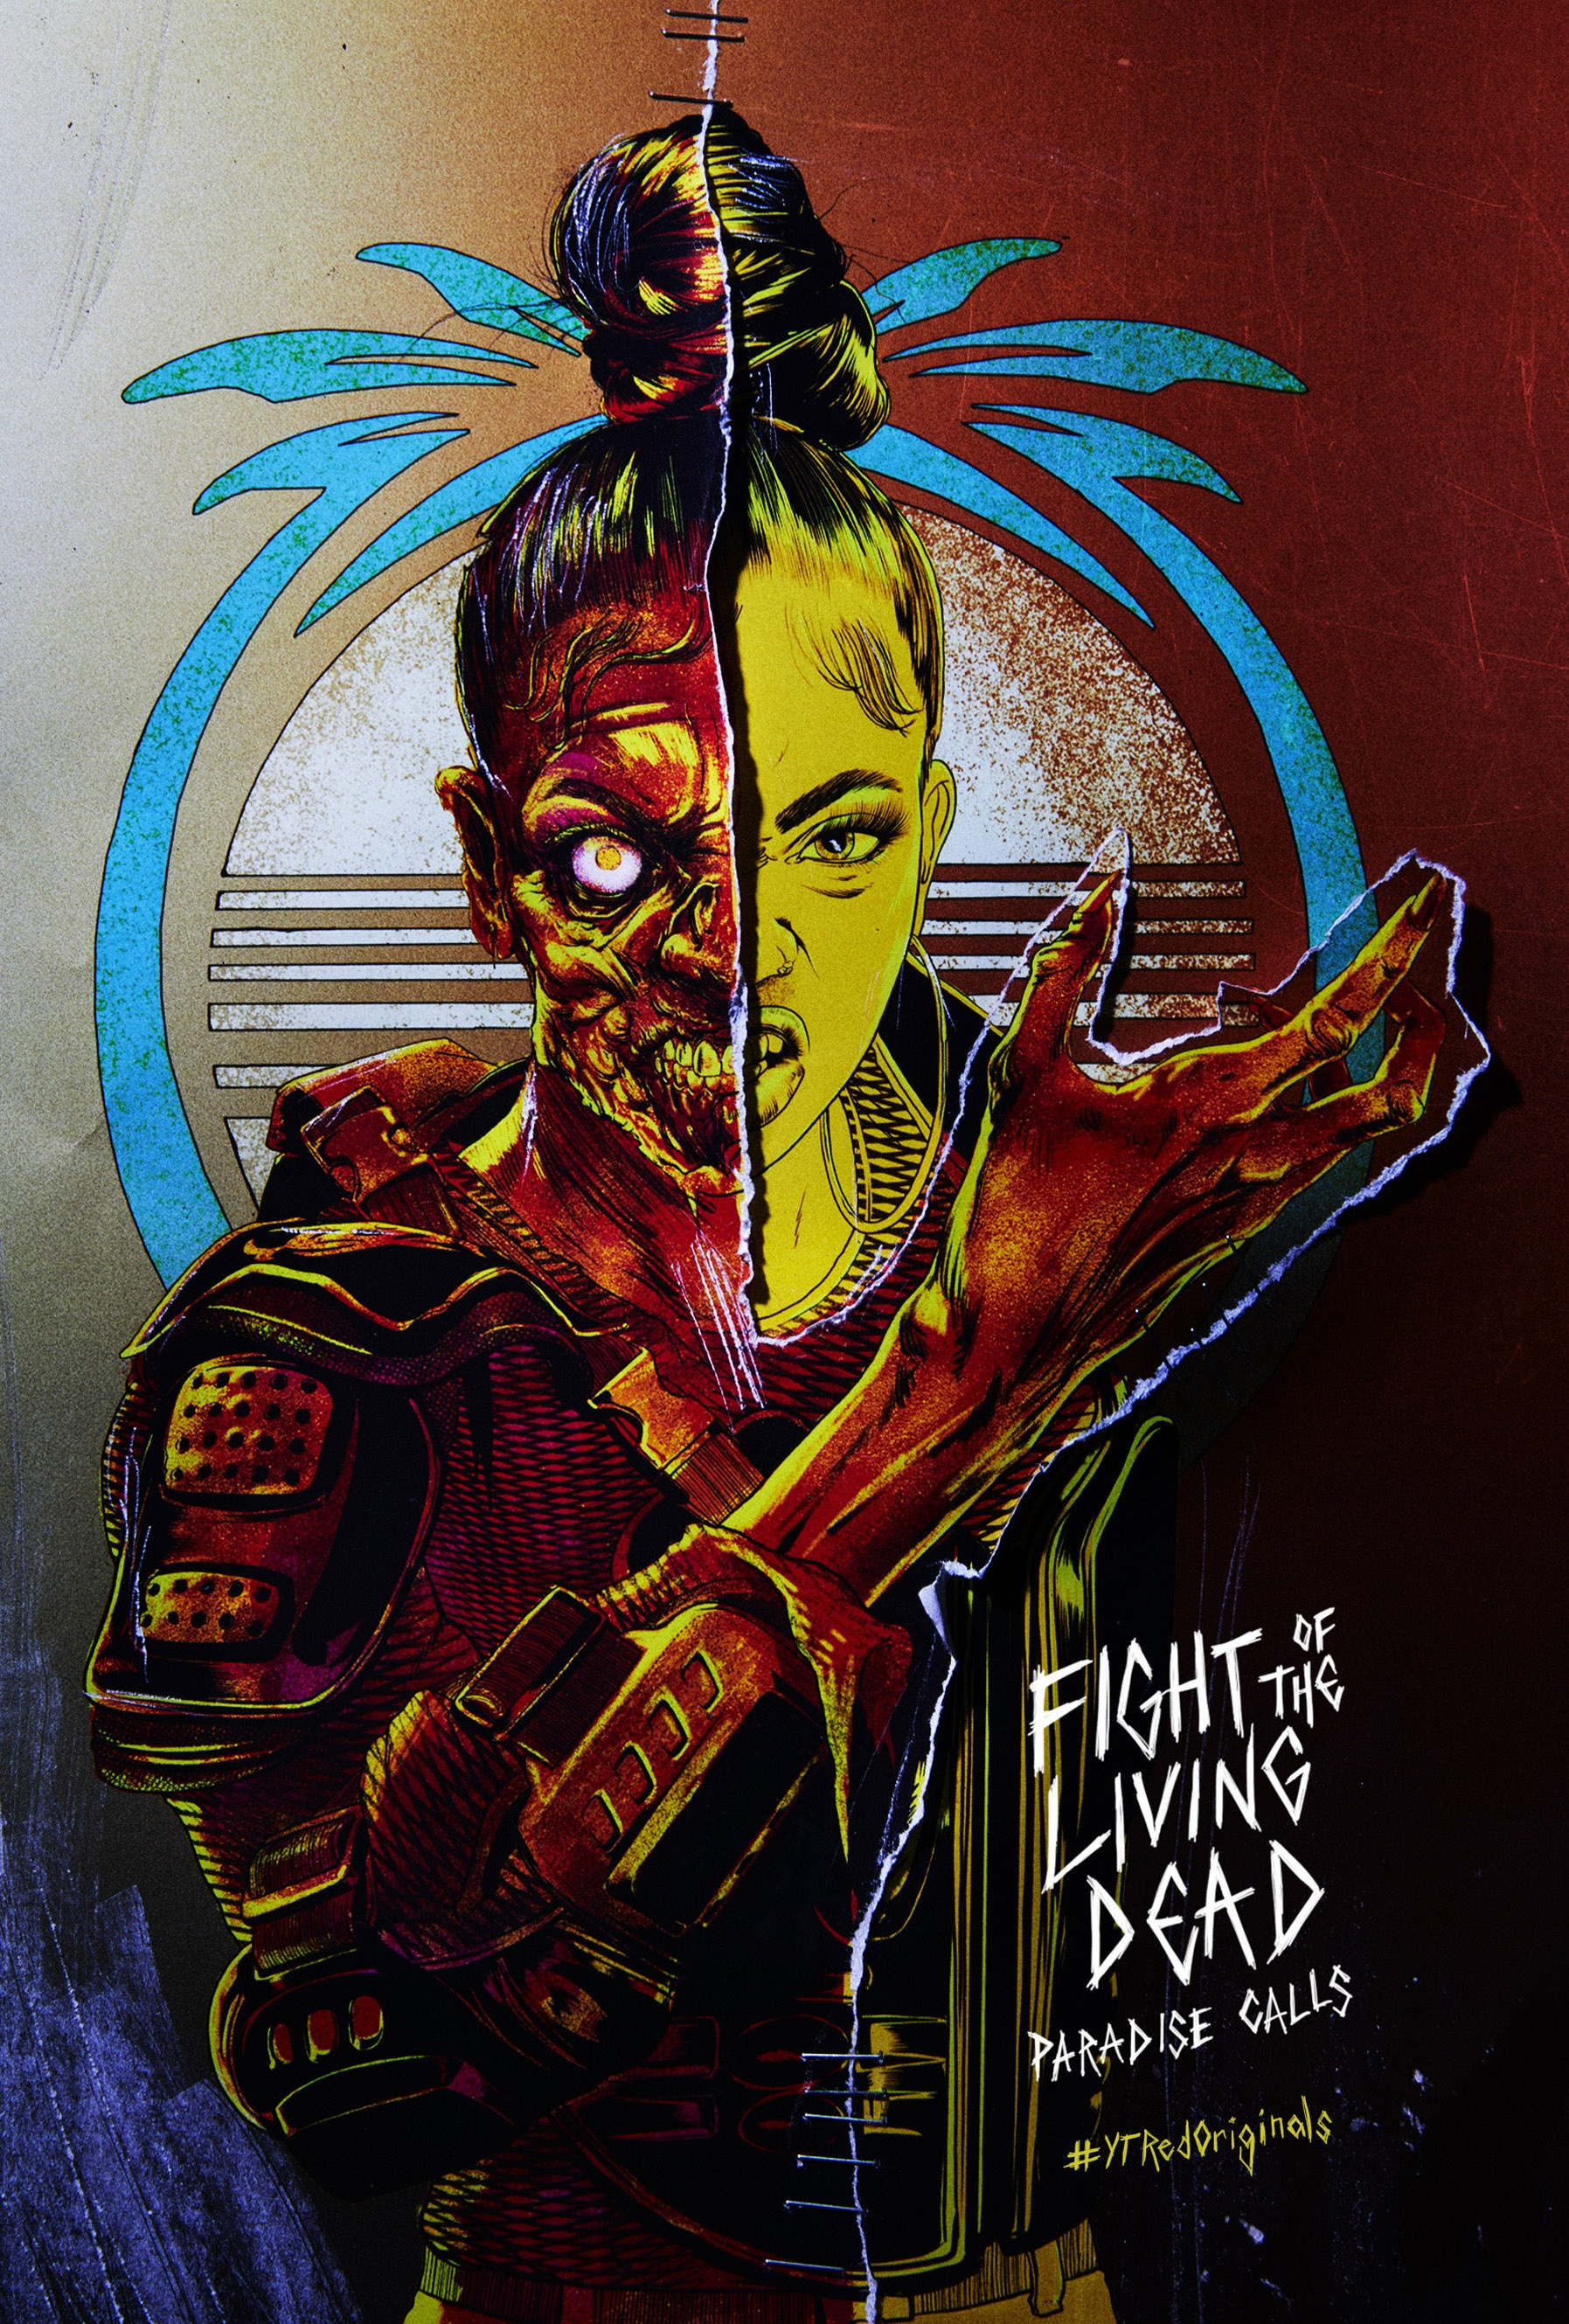 Image Media for Fight of the Living Dead: Paradise Calls - Character Series 2